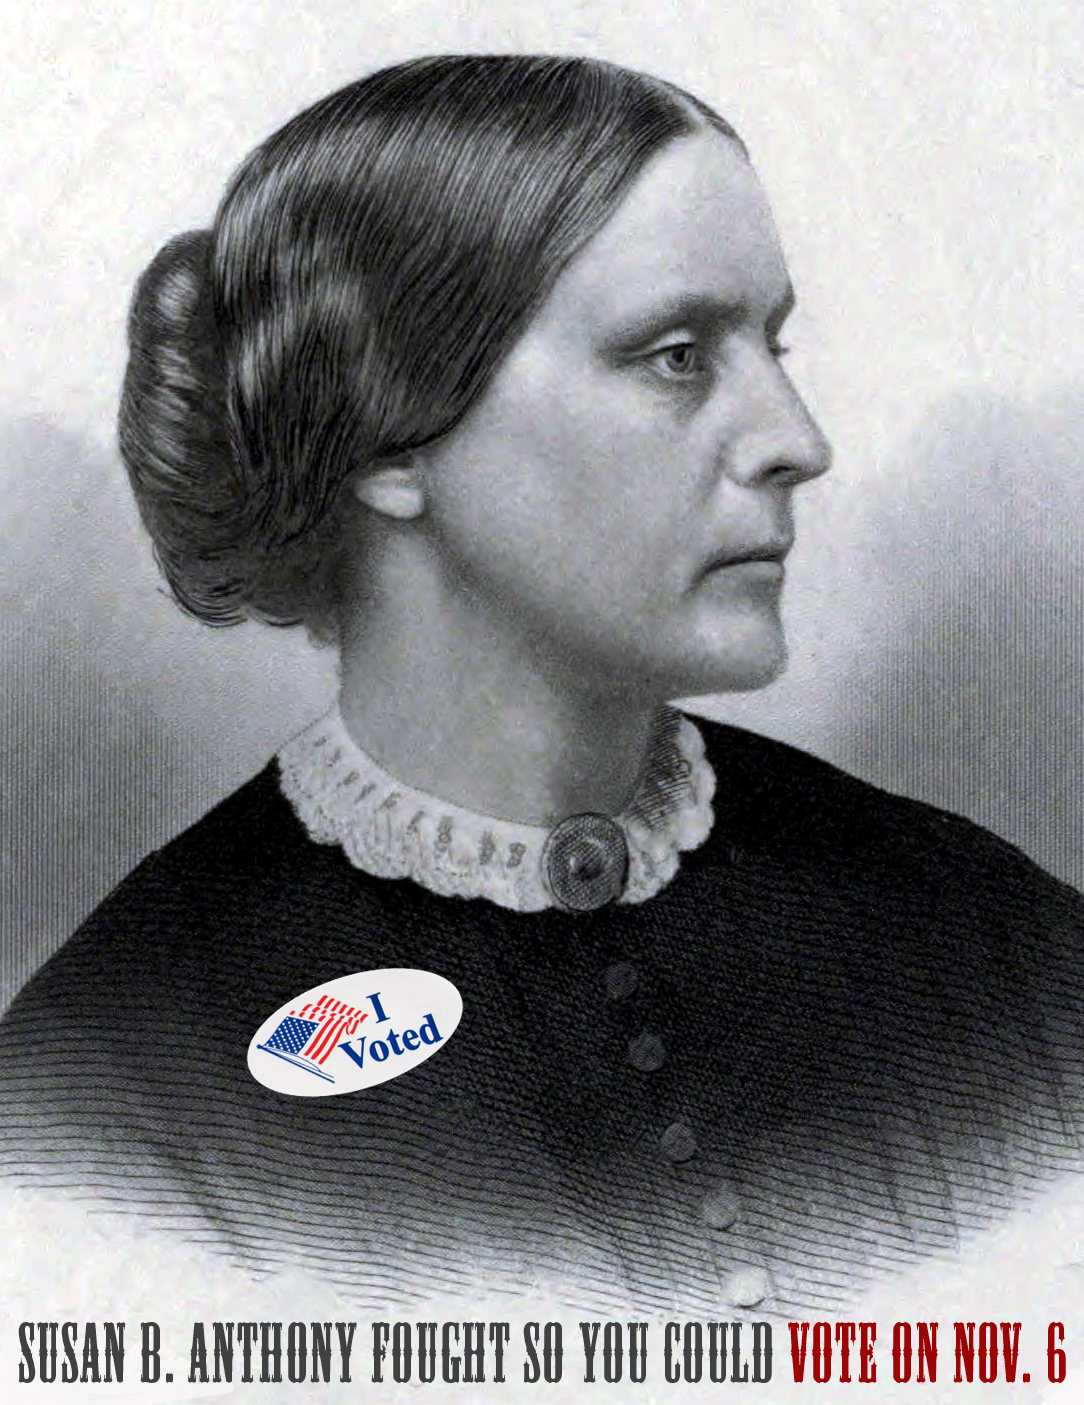 Susan_B_Anthony_fought.jpg